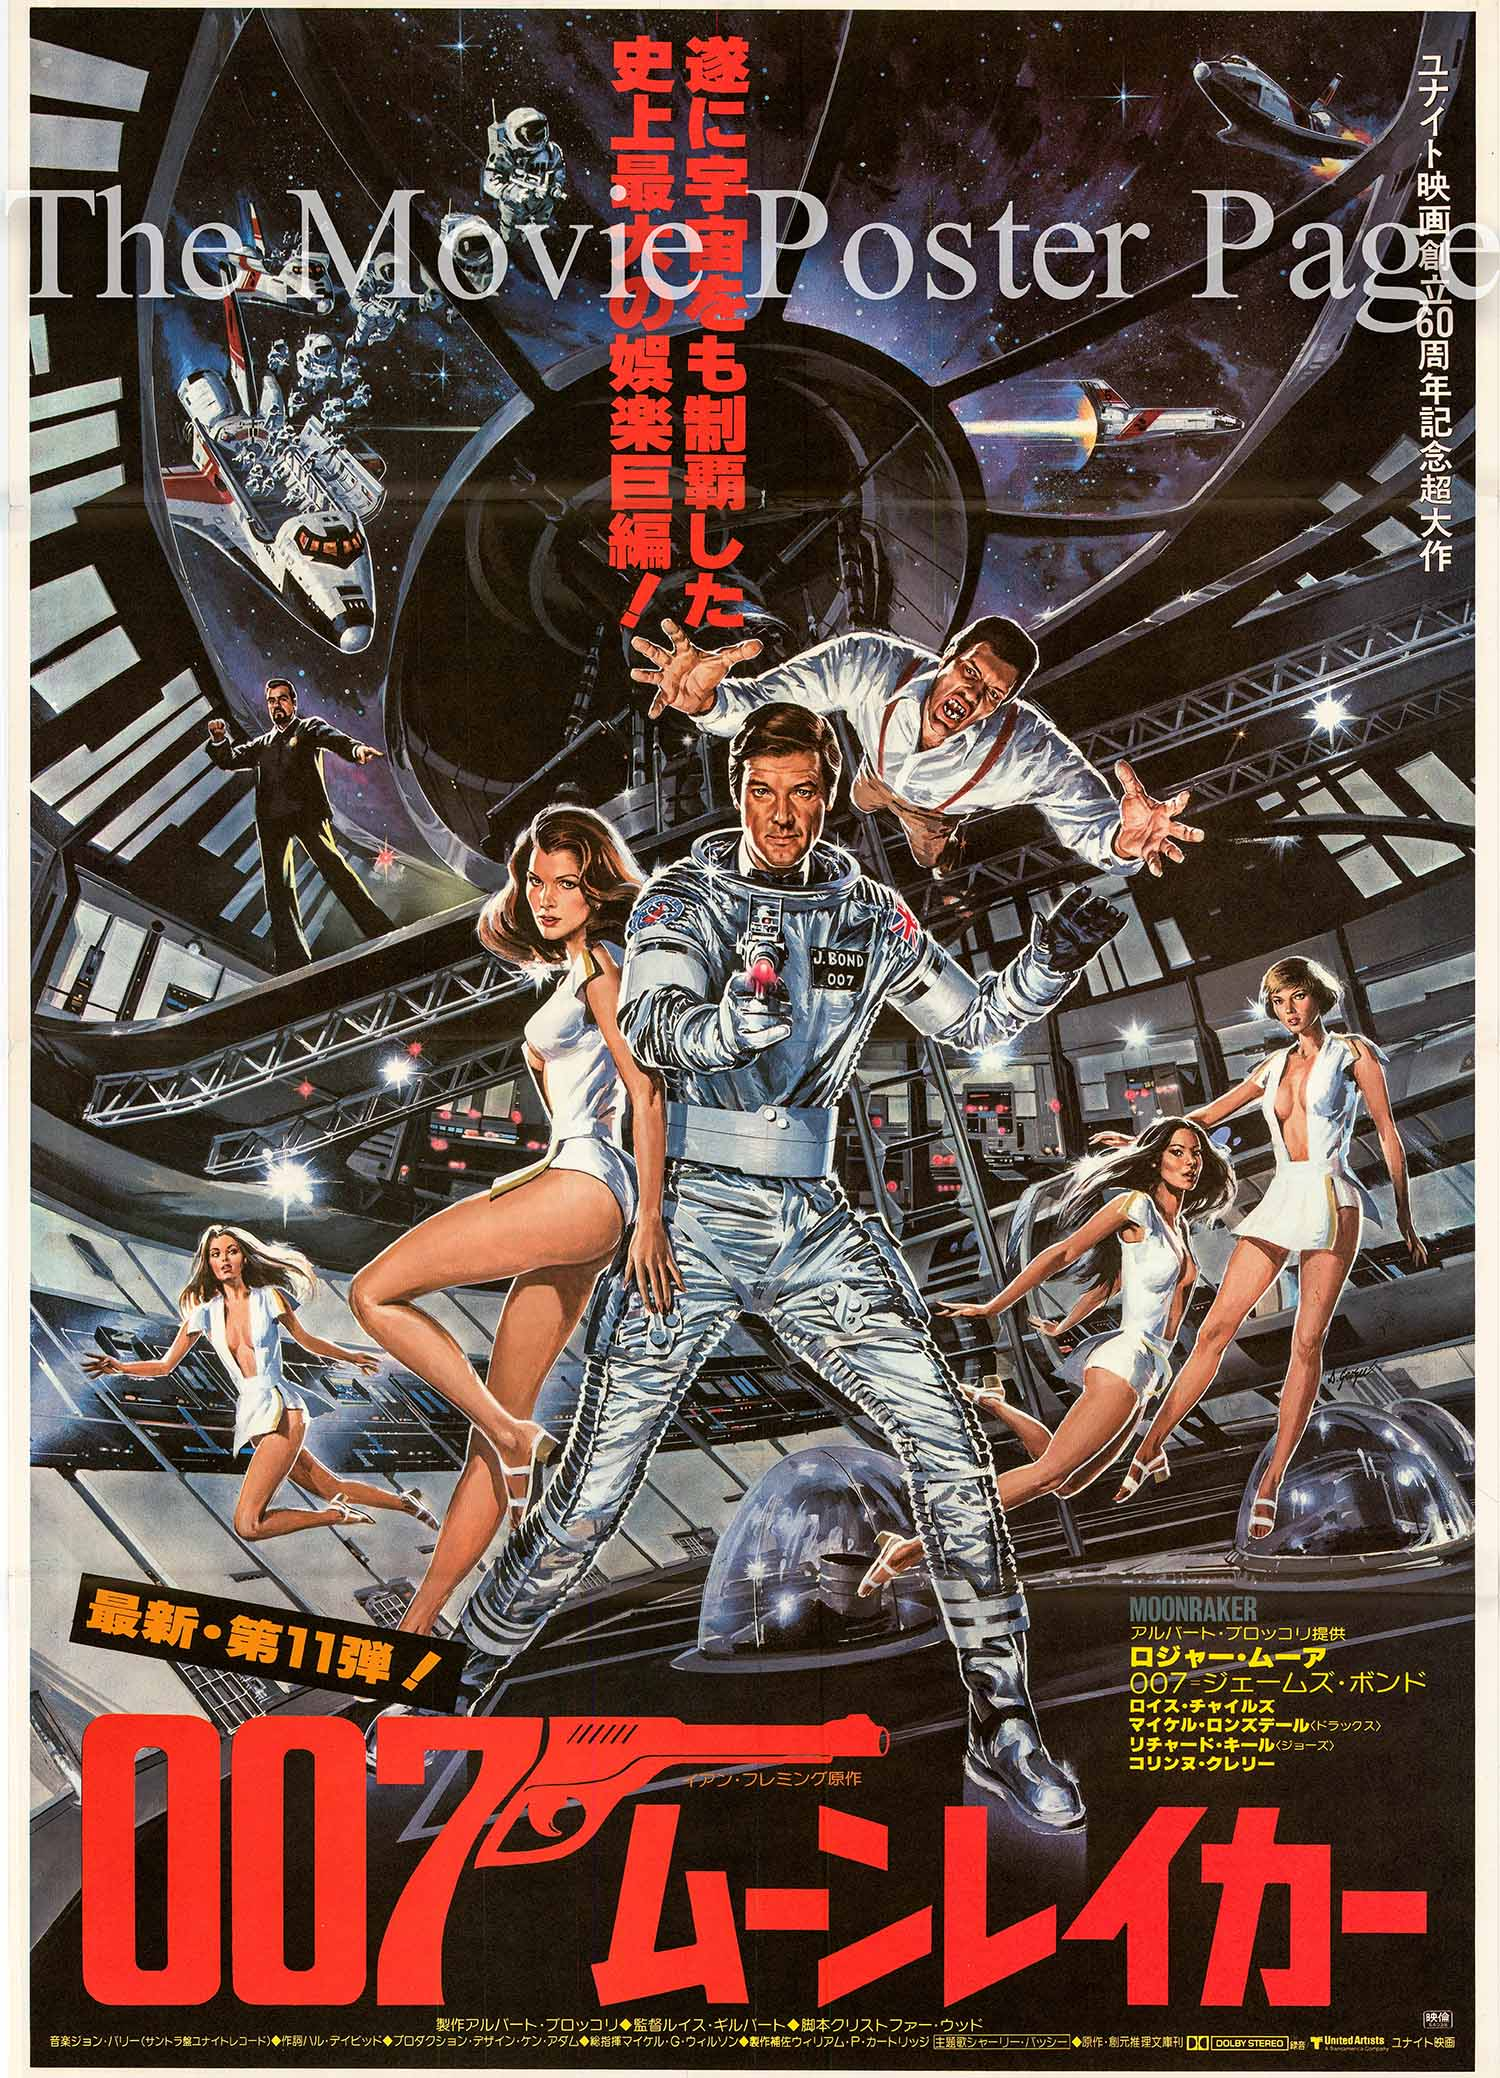 Pictured is a Japanese B2 poster made to promote the 1979 Lewis Gilbert film Moonraker starring Roger Moore as James Bond.